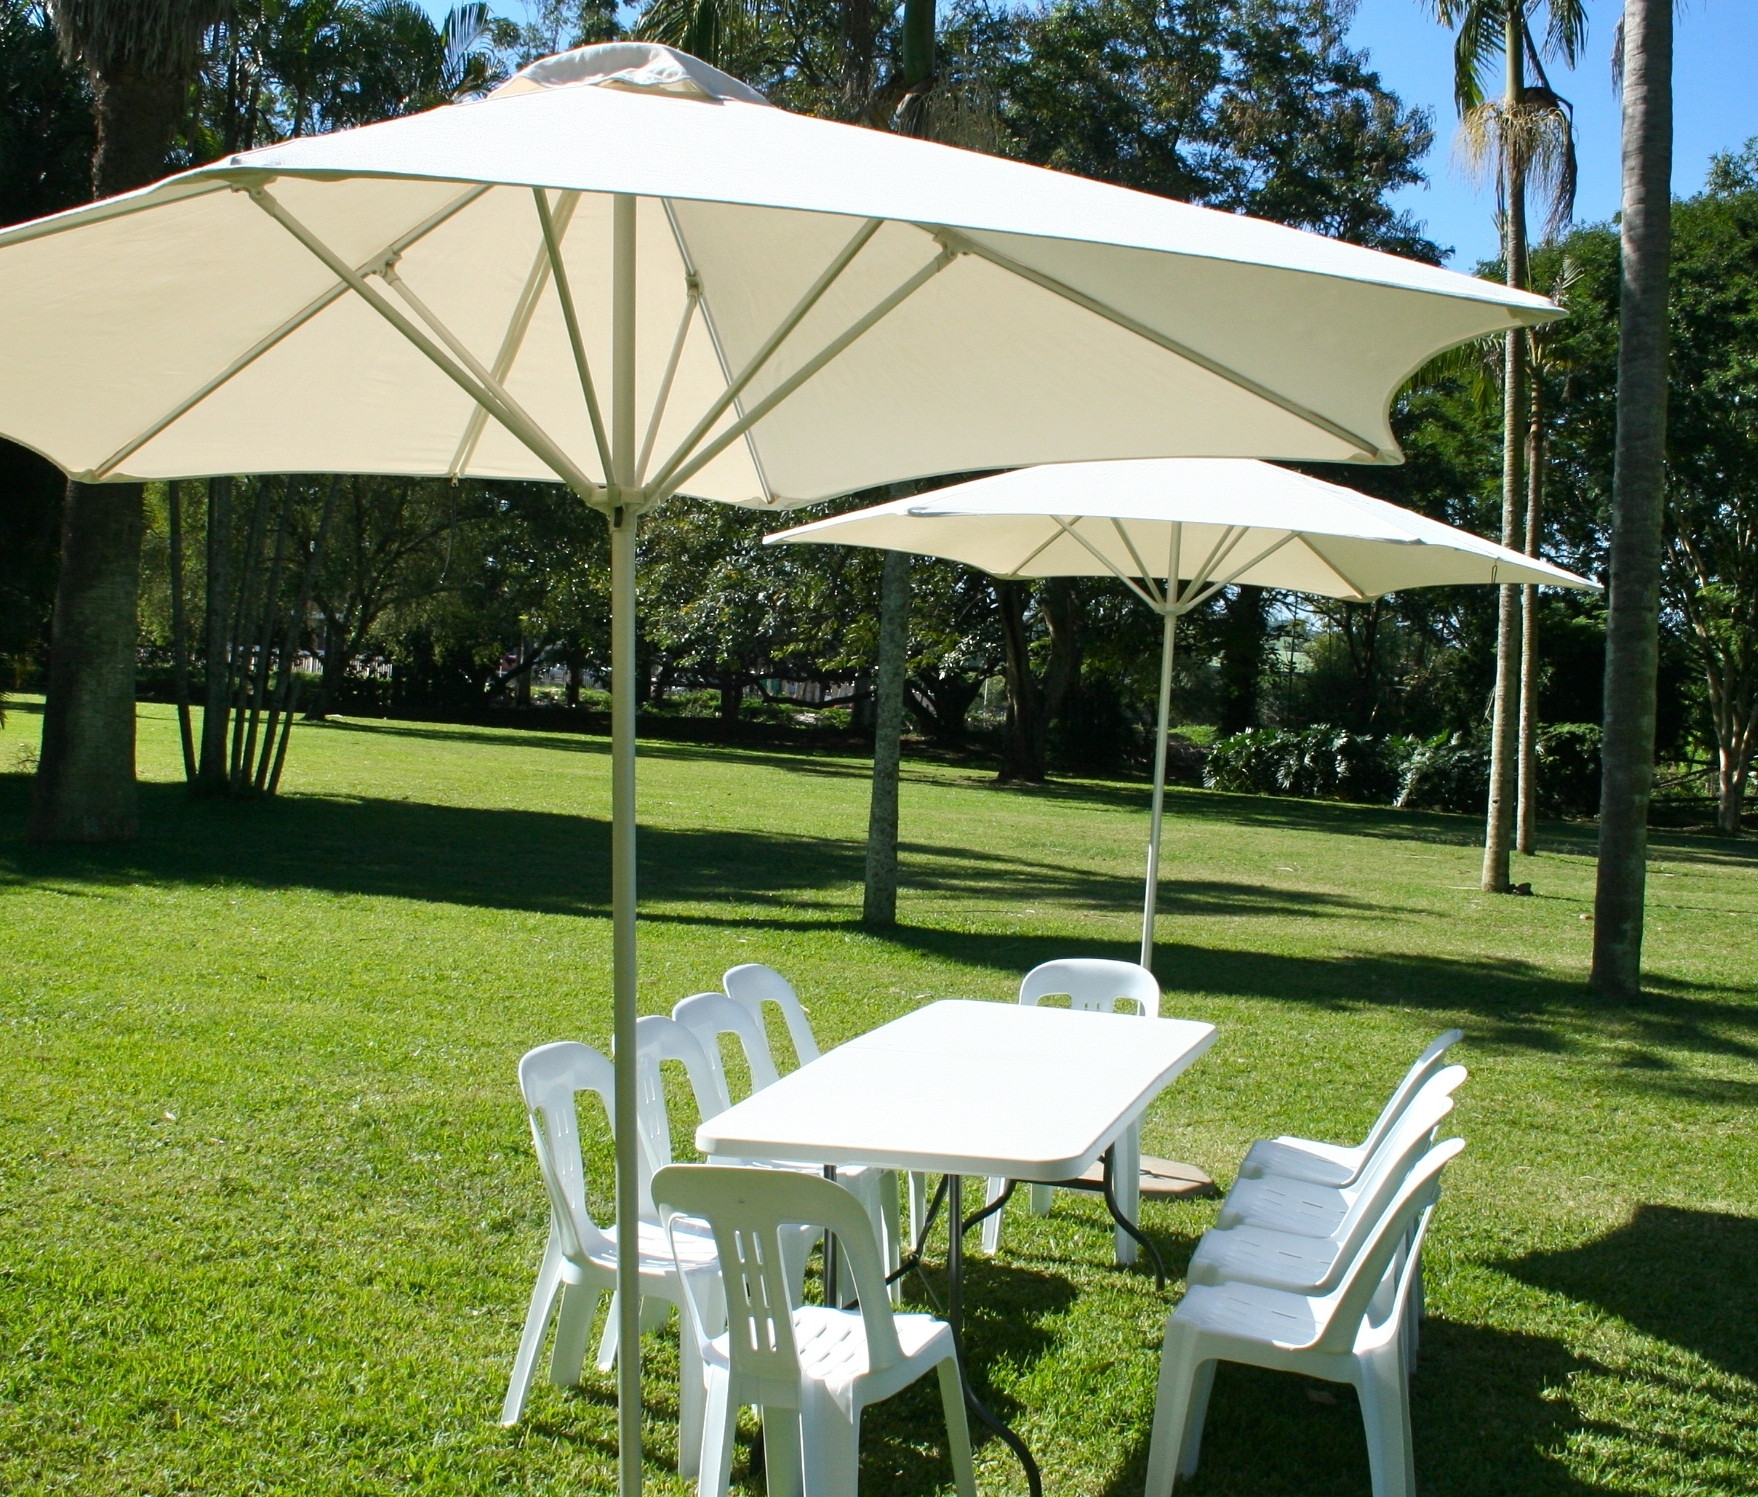 Large Patio Umbrellas Regarding Preferred Outdoor Patio Umbrella Rental Umbrella Hire (View 6 of 20)